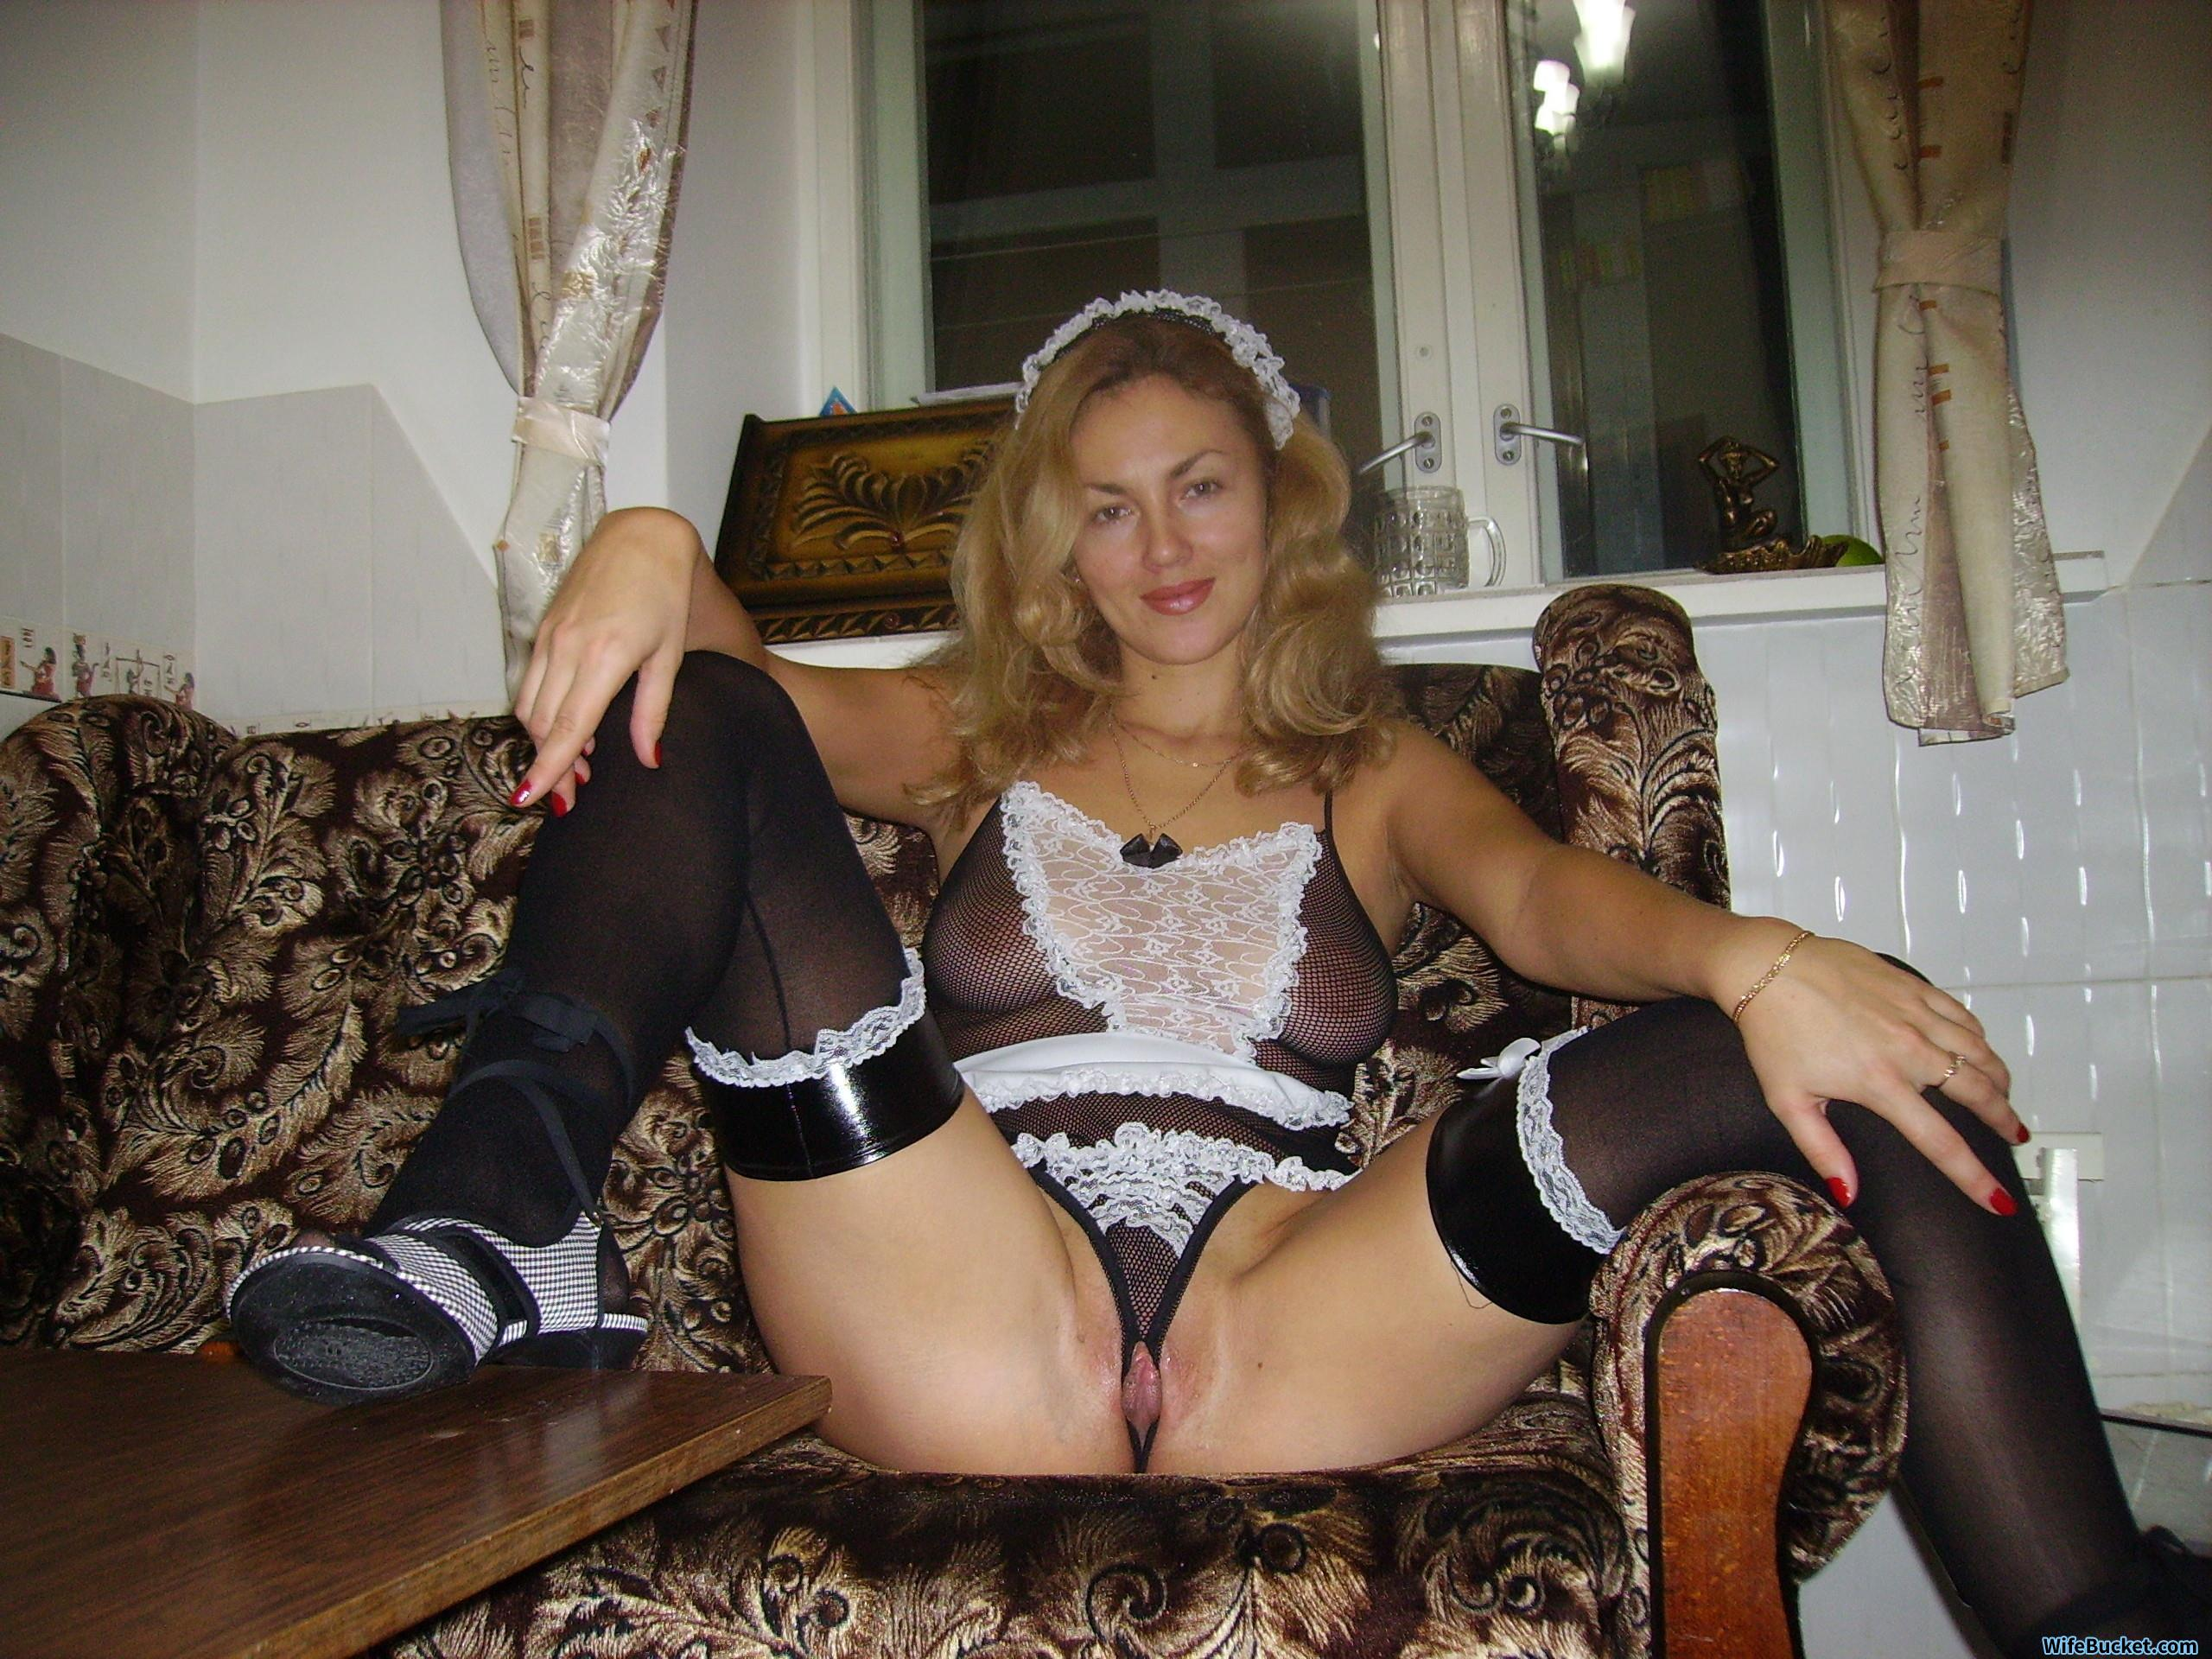 Help Wife french maid costume